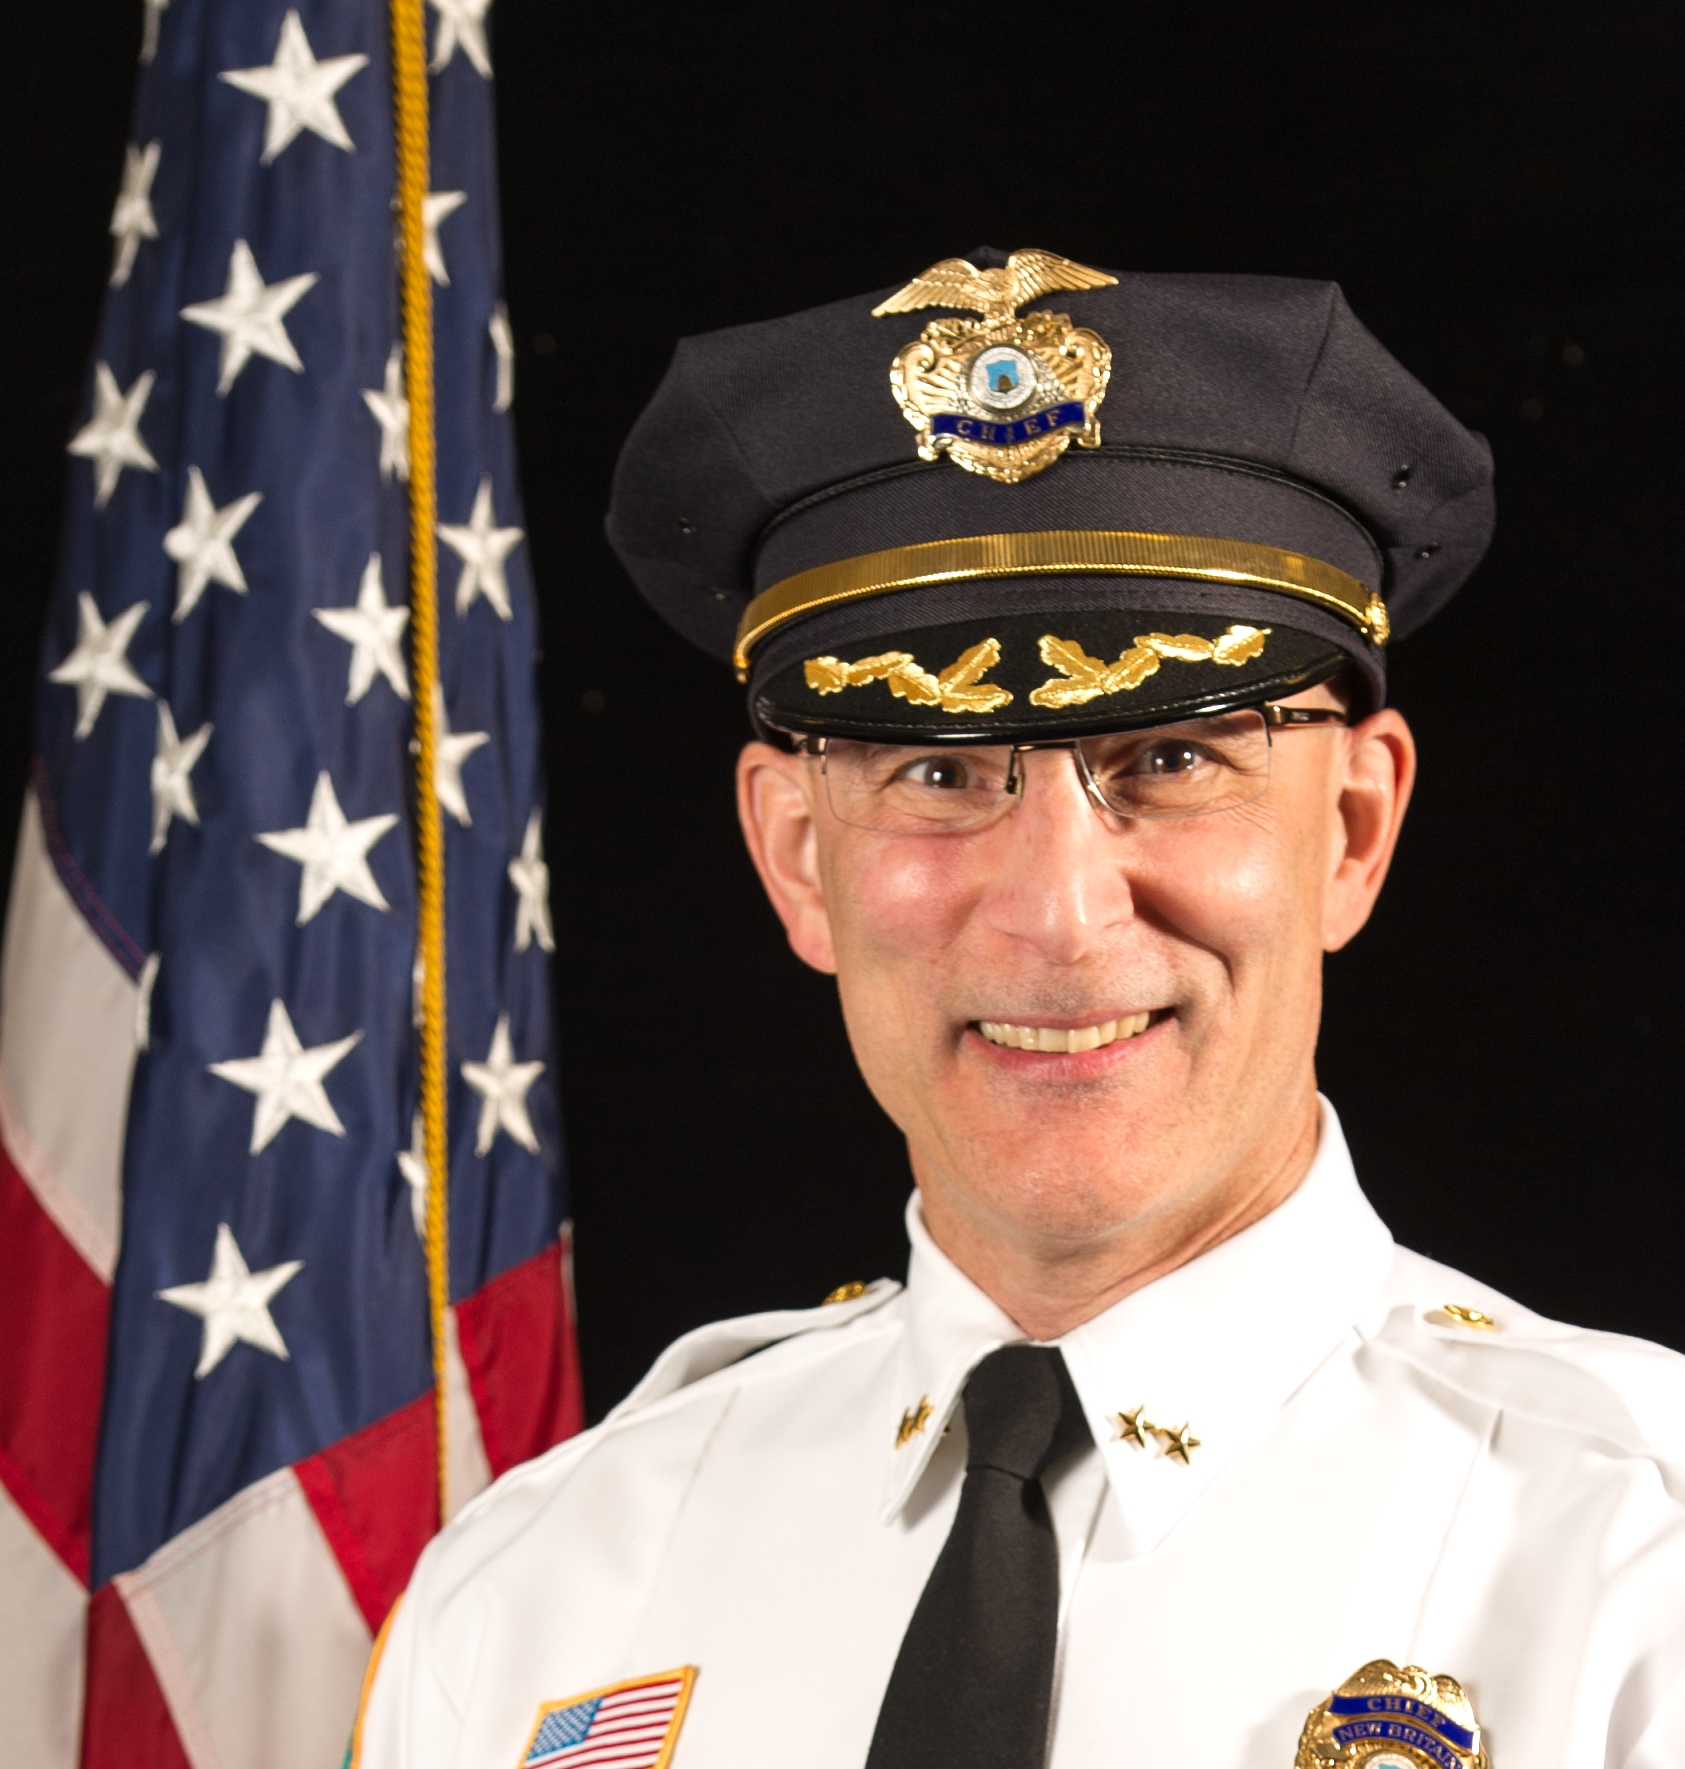 Interim Chief James Wardwell